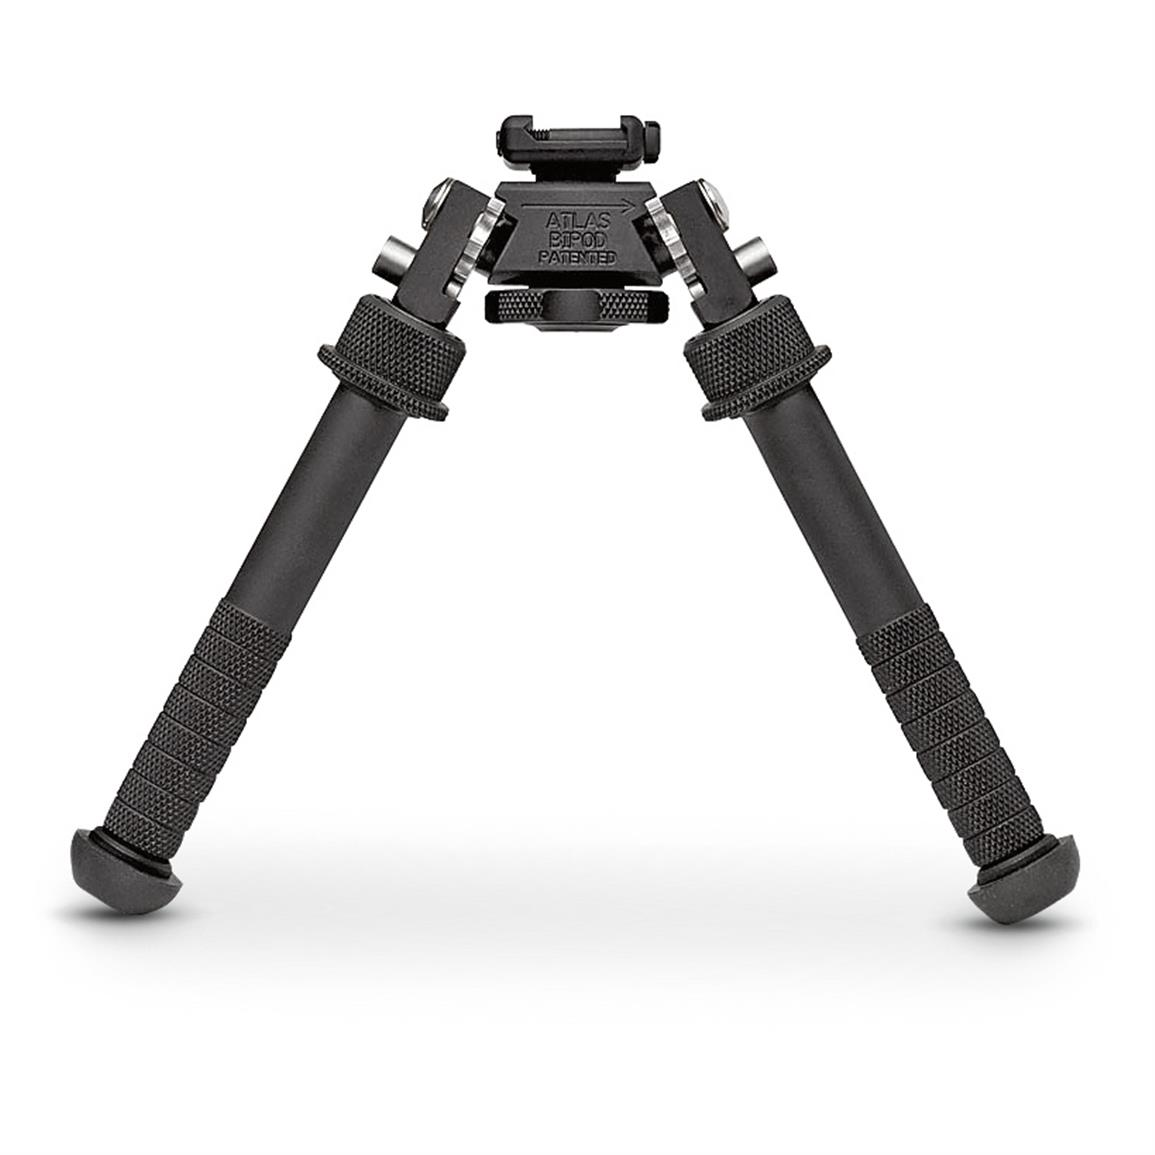 Atlas Bipod, 1913 Rail Clamp